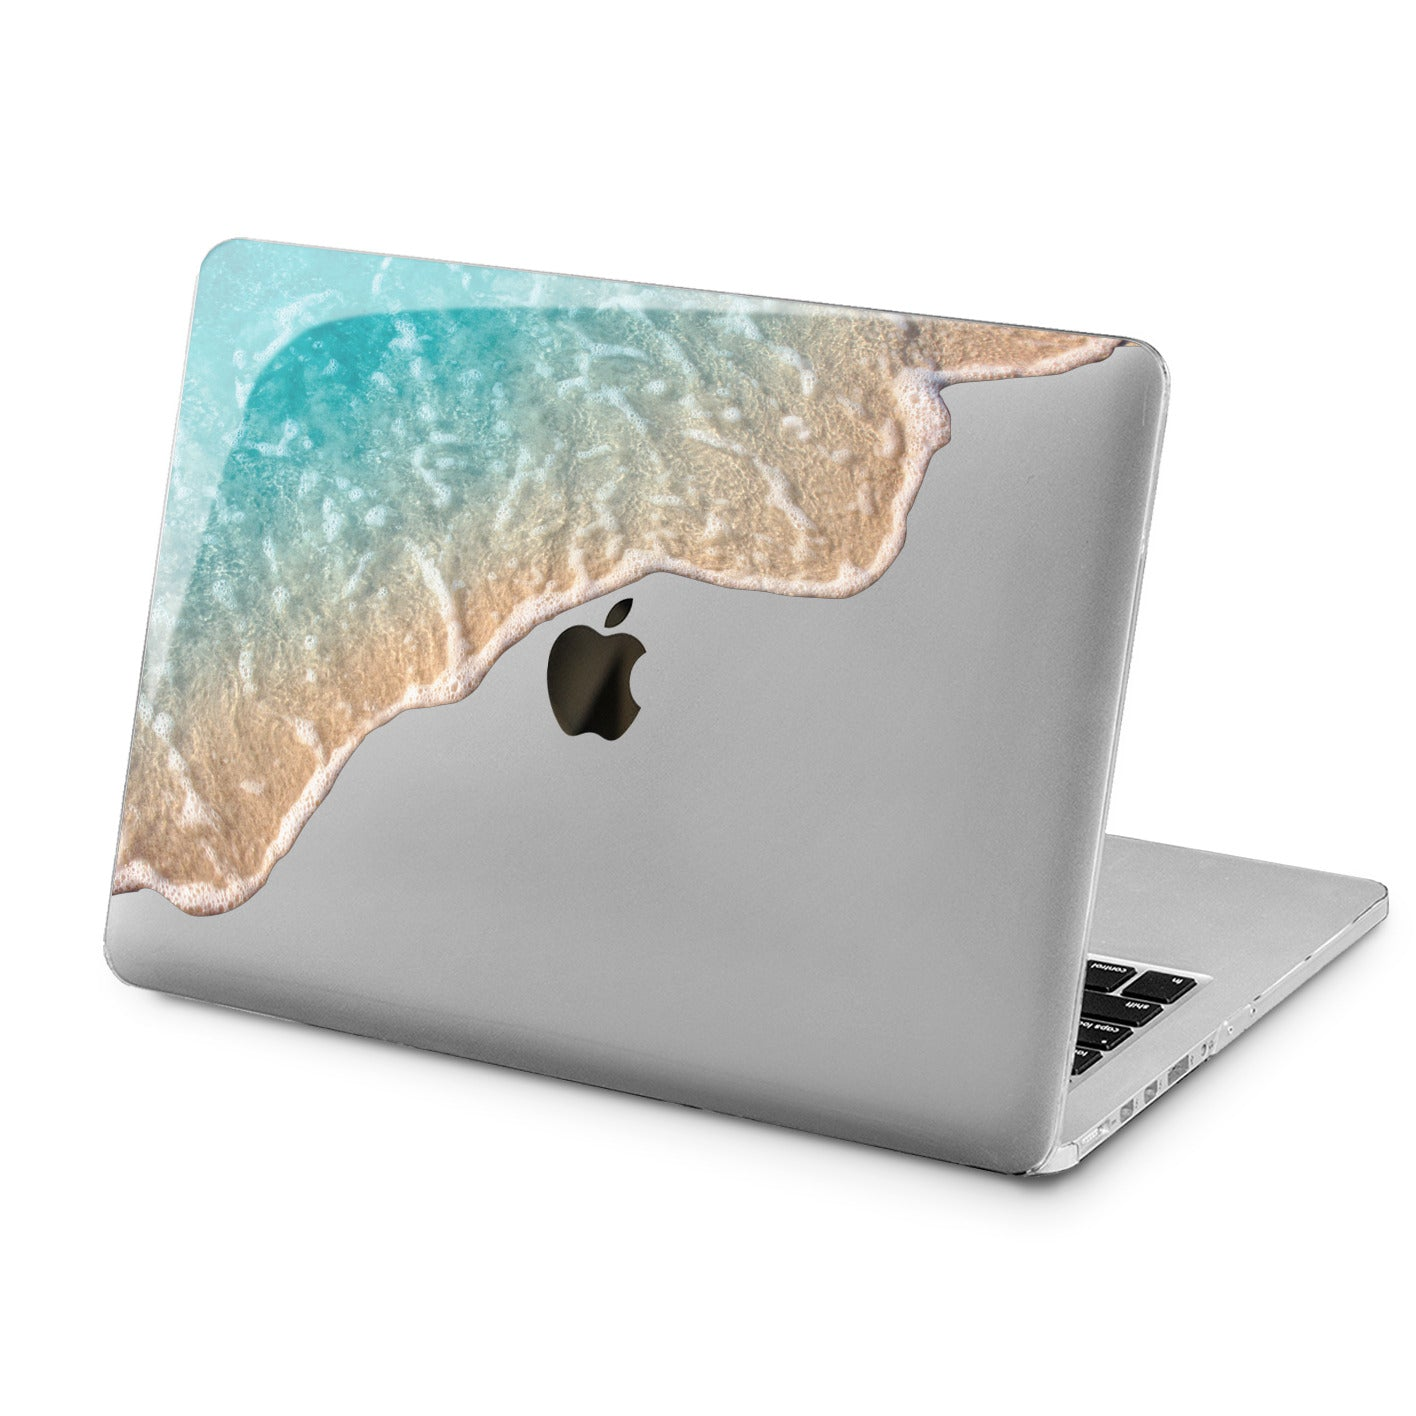 Lex Altern Lex Altern Warm Wave Case for your Laptop Apple Macbook.